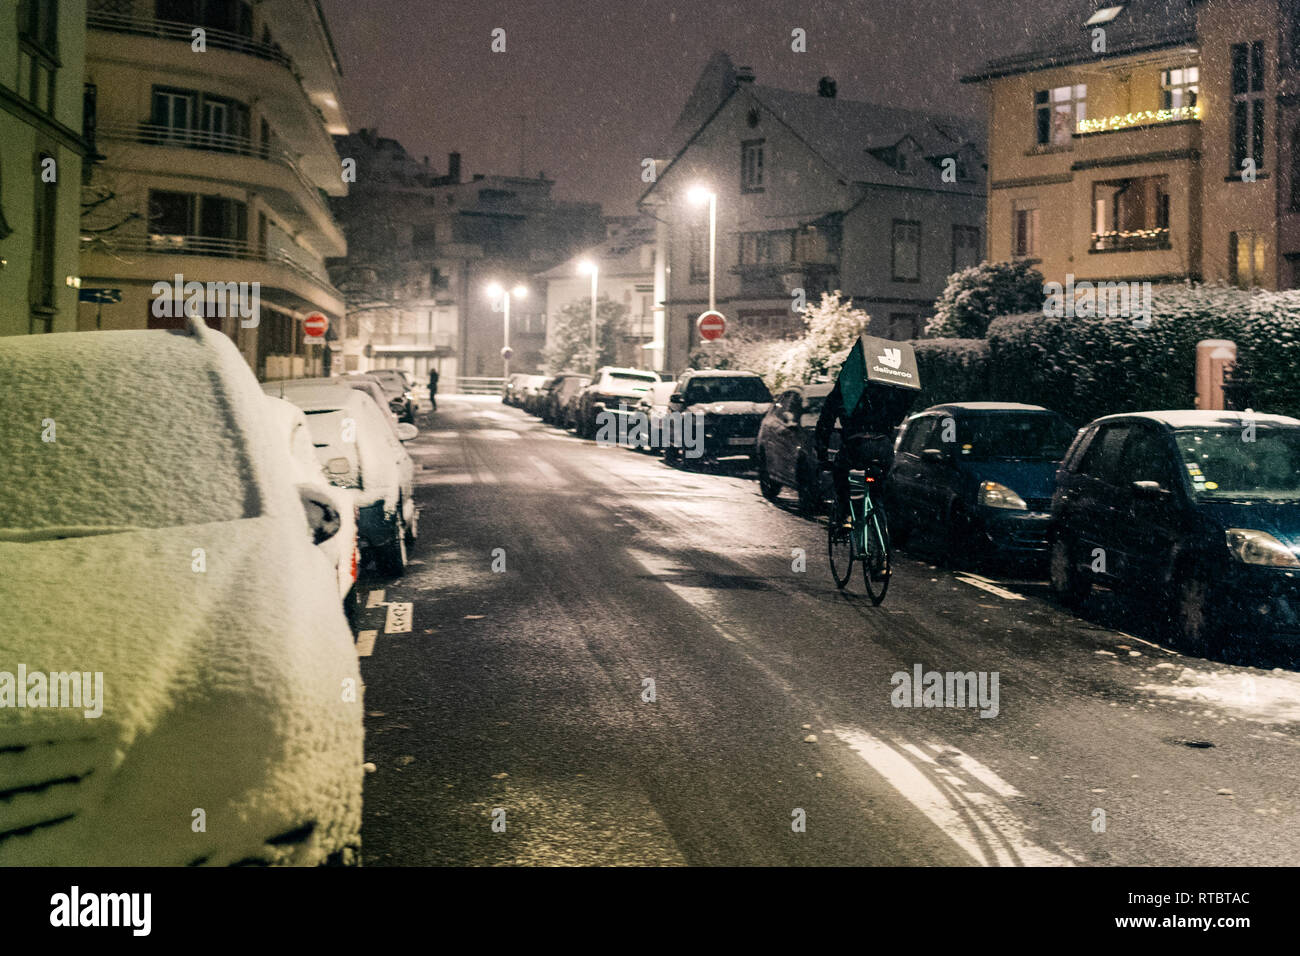 STRASBOURG, FRANCE - DEC 3 2017: Deliveroo delivery employee on bike in French city cycling fast for food delivery on time on a cold winter snowy night in residential neighborhood with cars parked - Stock Image